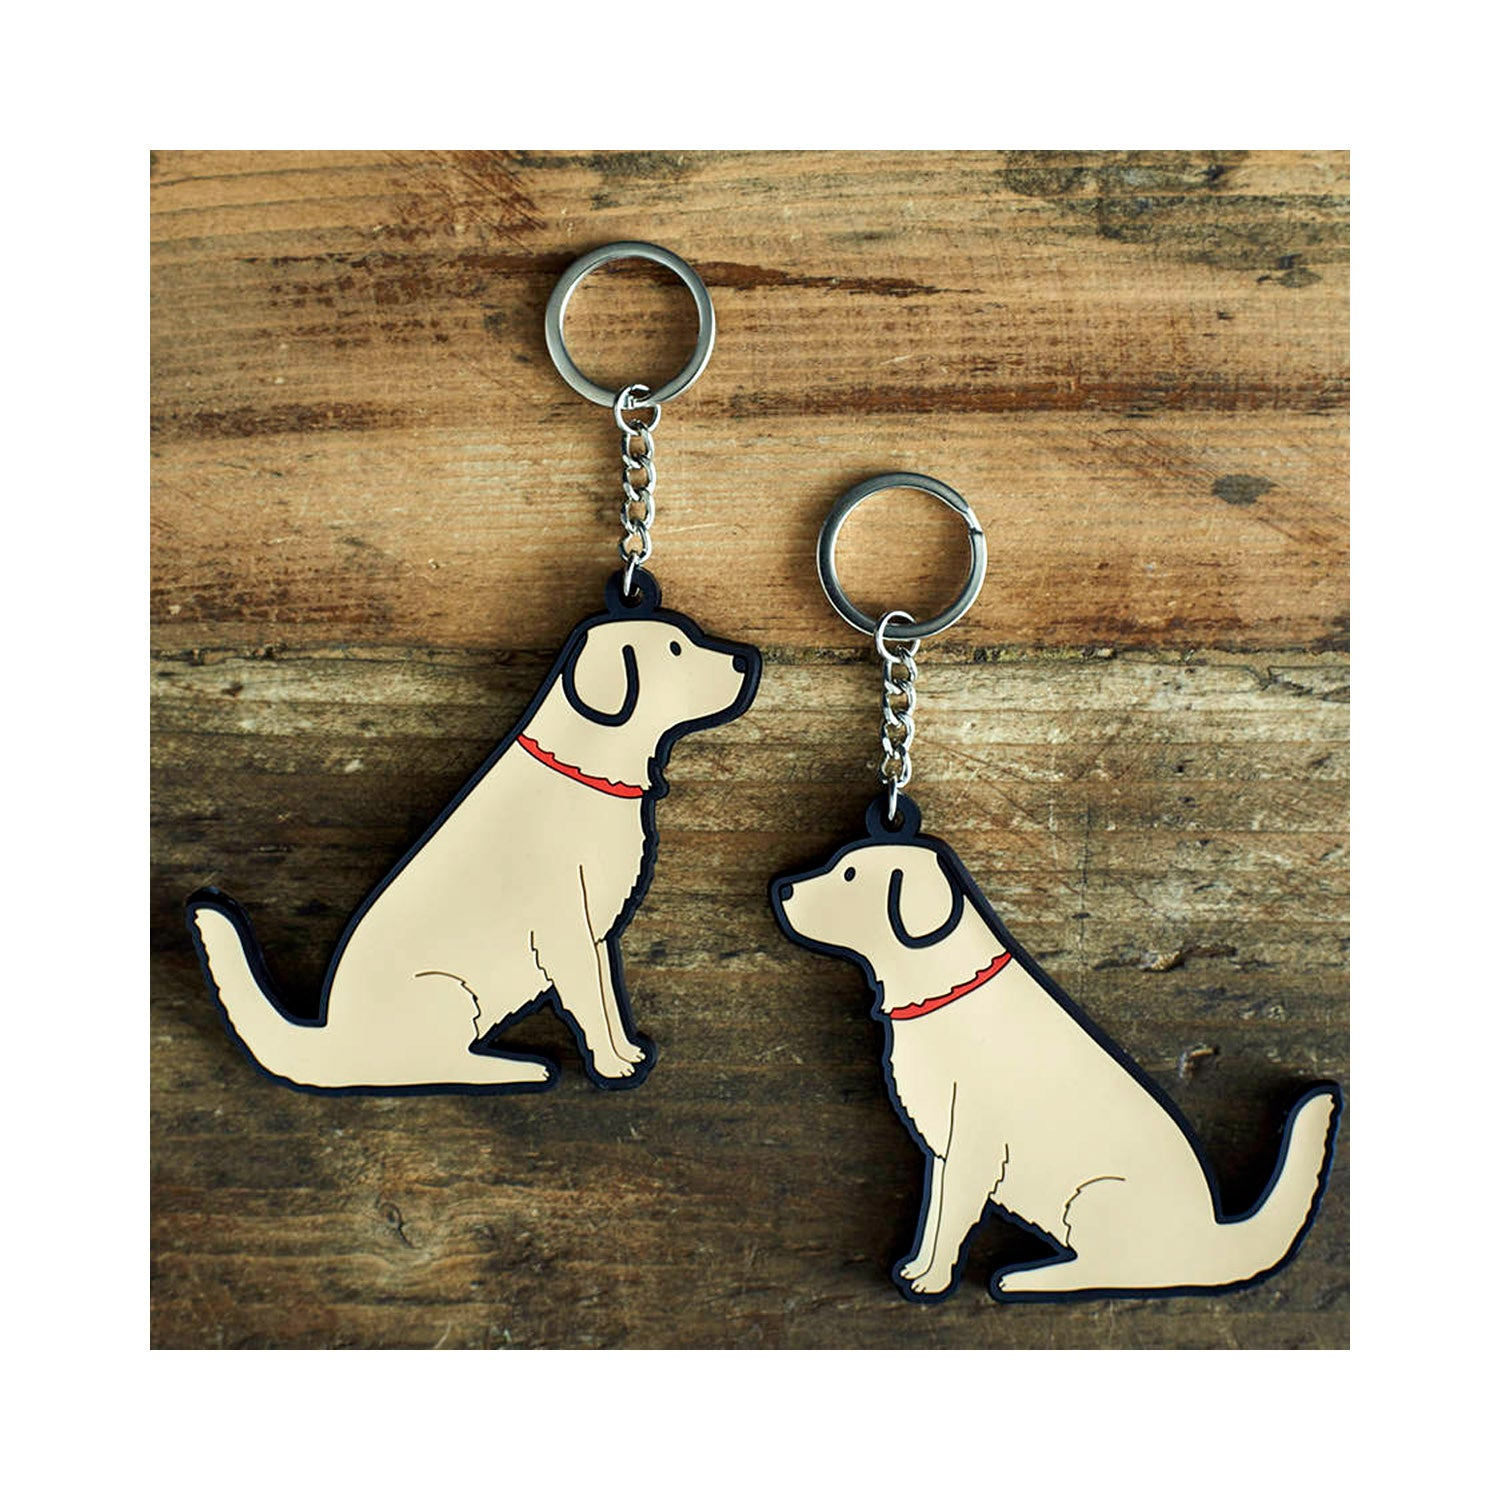 Dog Lover Gifts available at Dog Krazy Gifts - Noah The Golden Retriever Keyring - part of the Sweet William range available from Dog Krazy Gifts